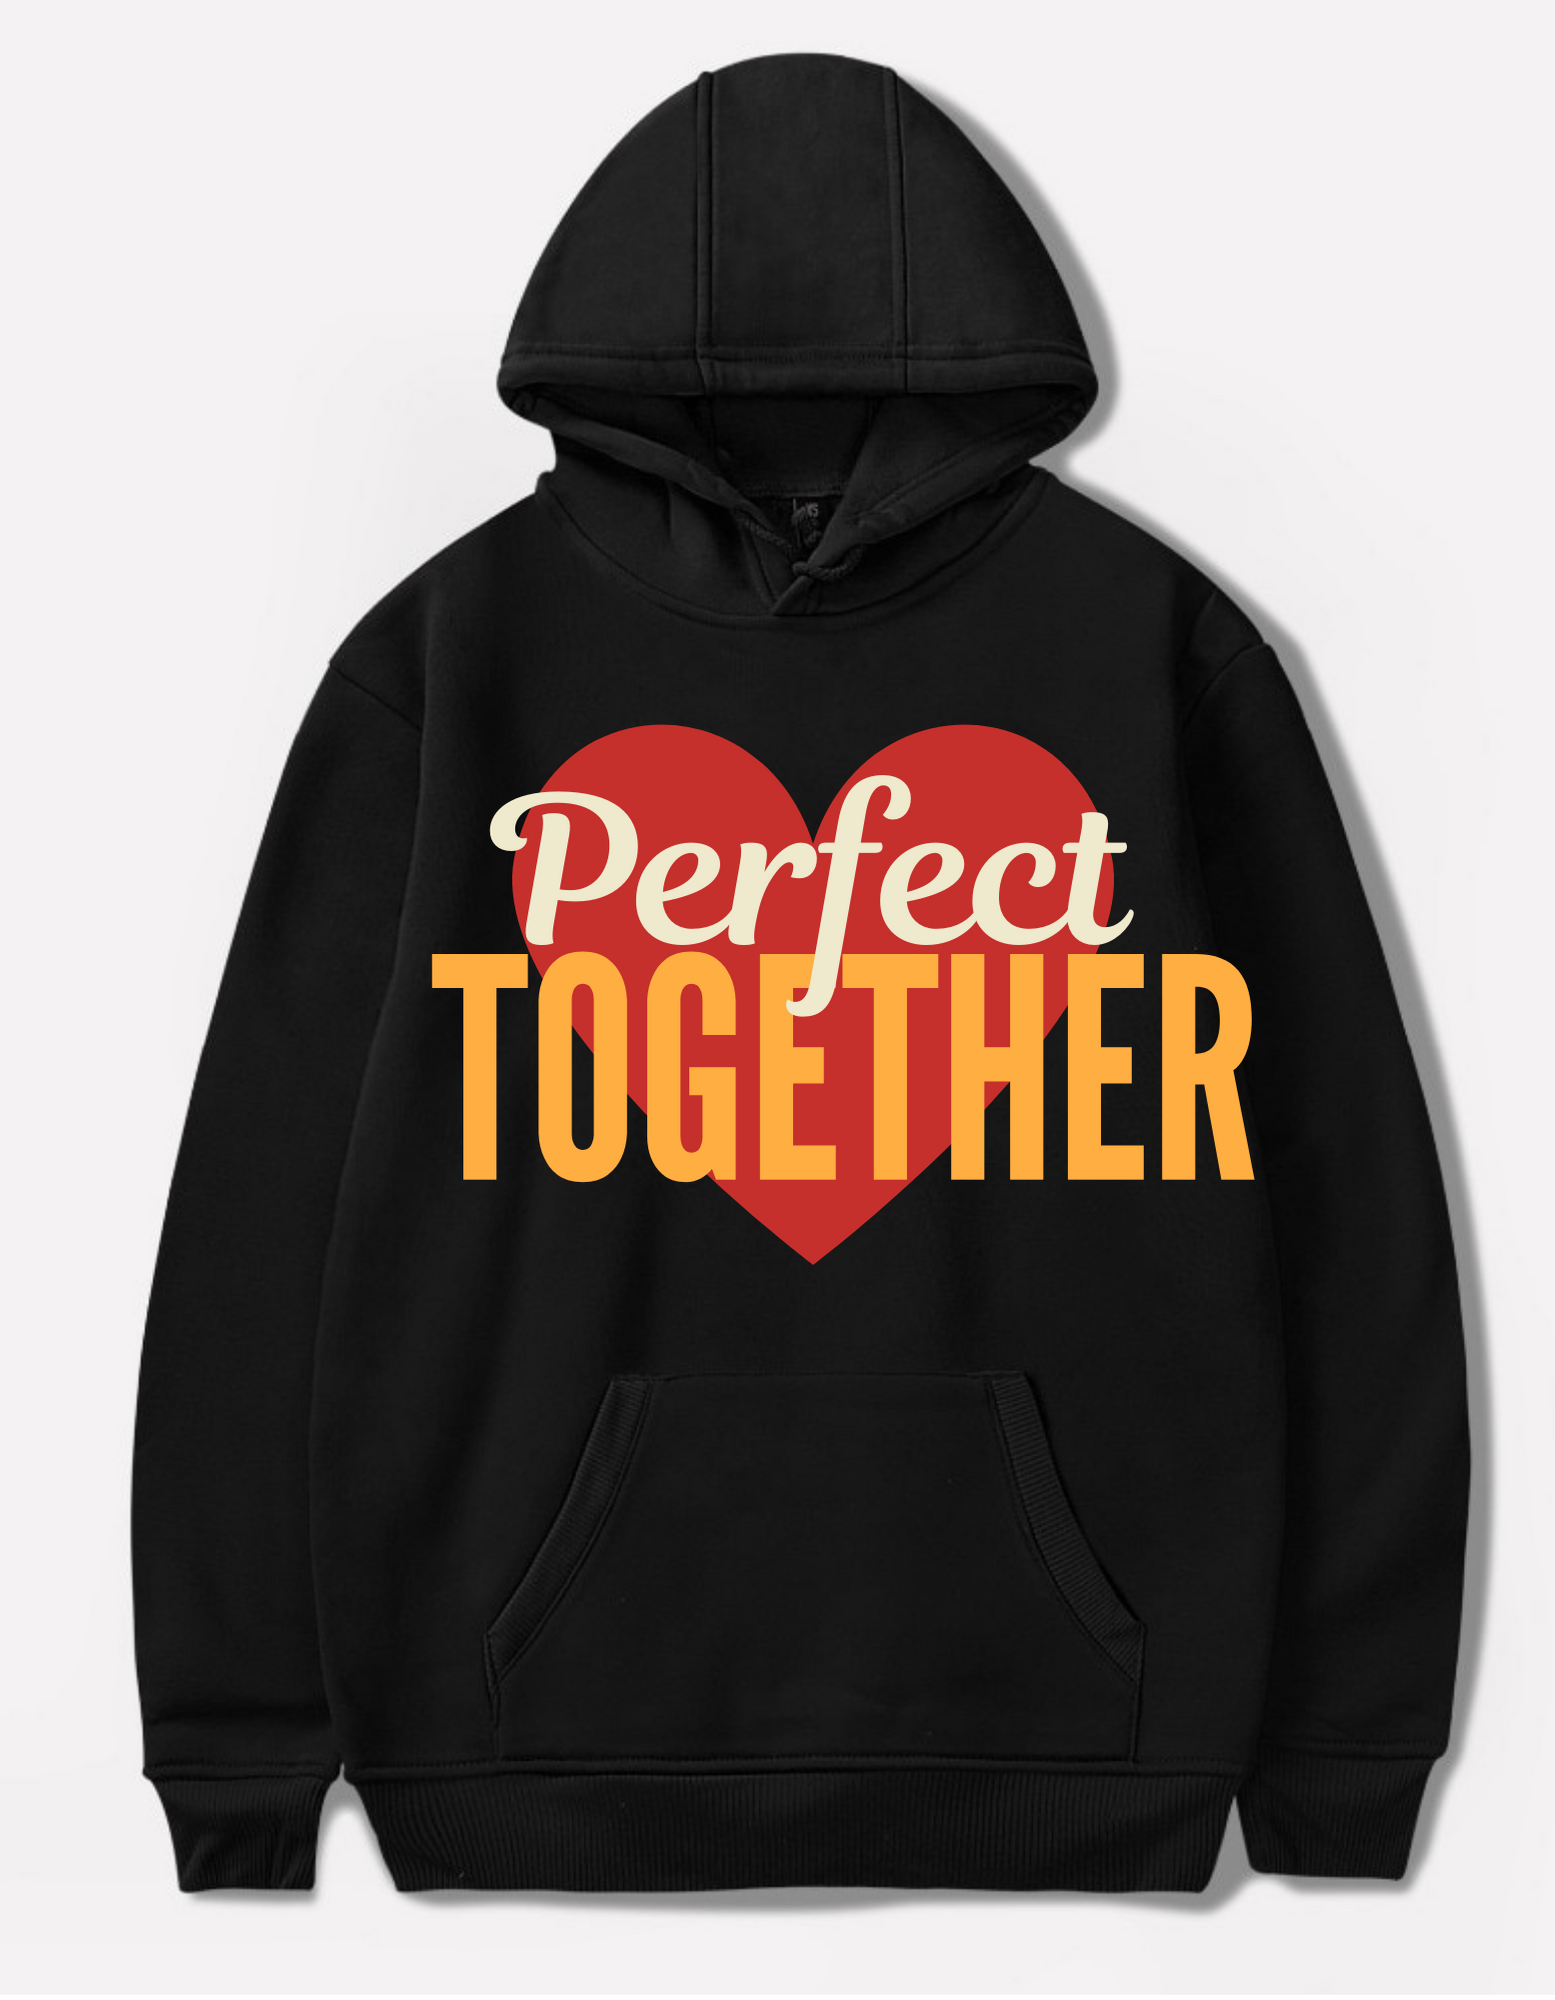 Perfect Together hoodie